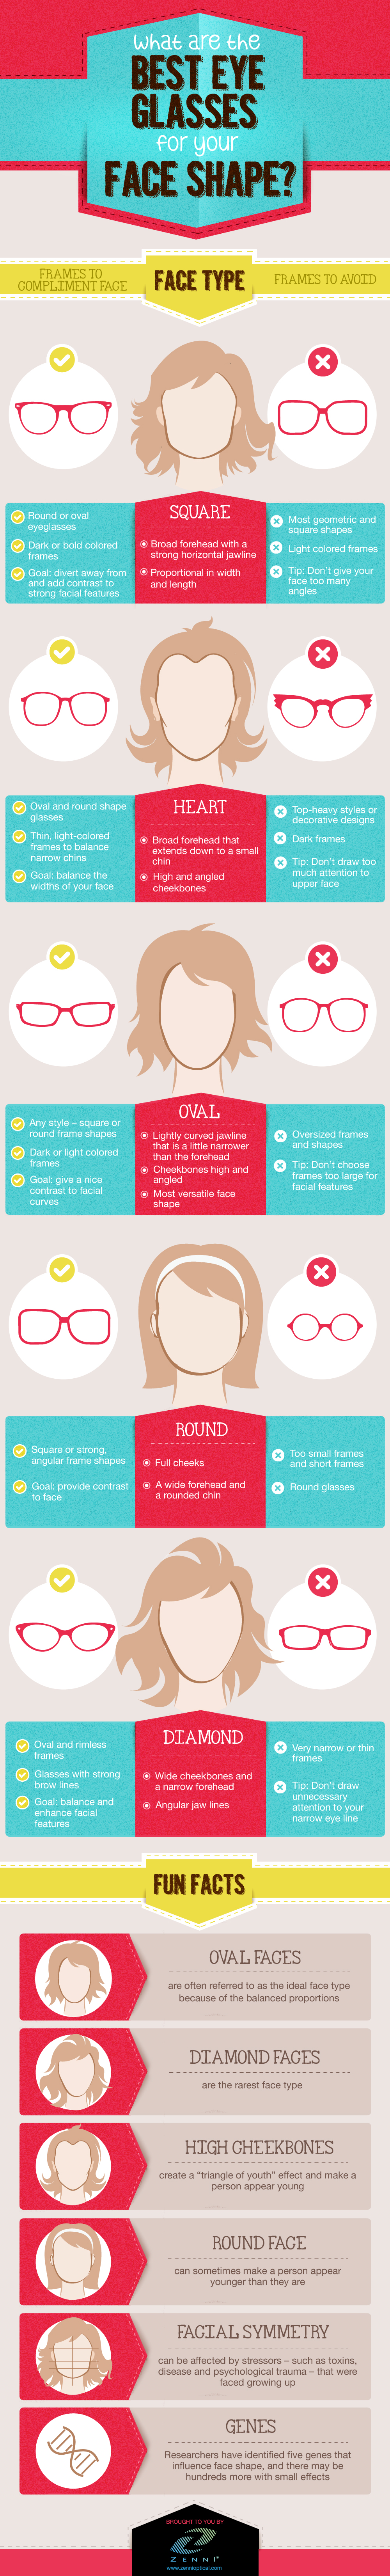 What Are the Best Eyeglasses for Your Face Shape?